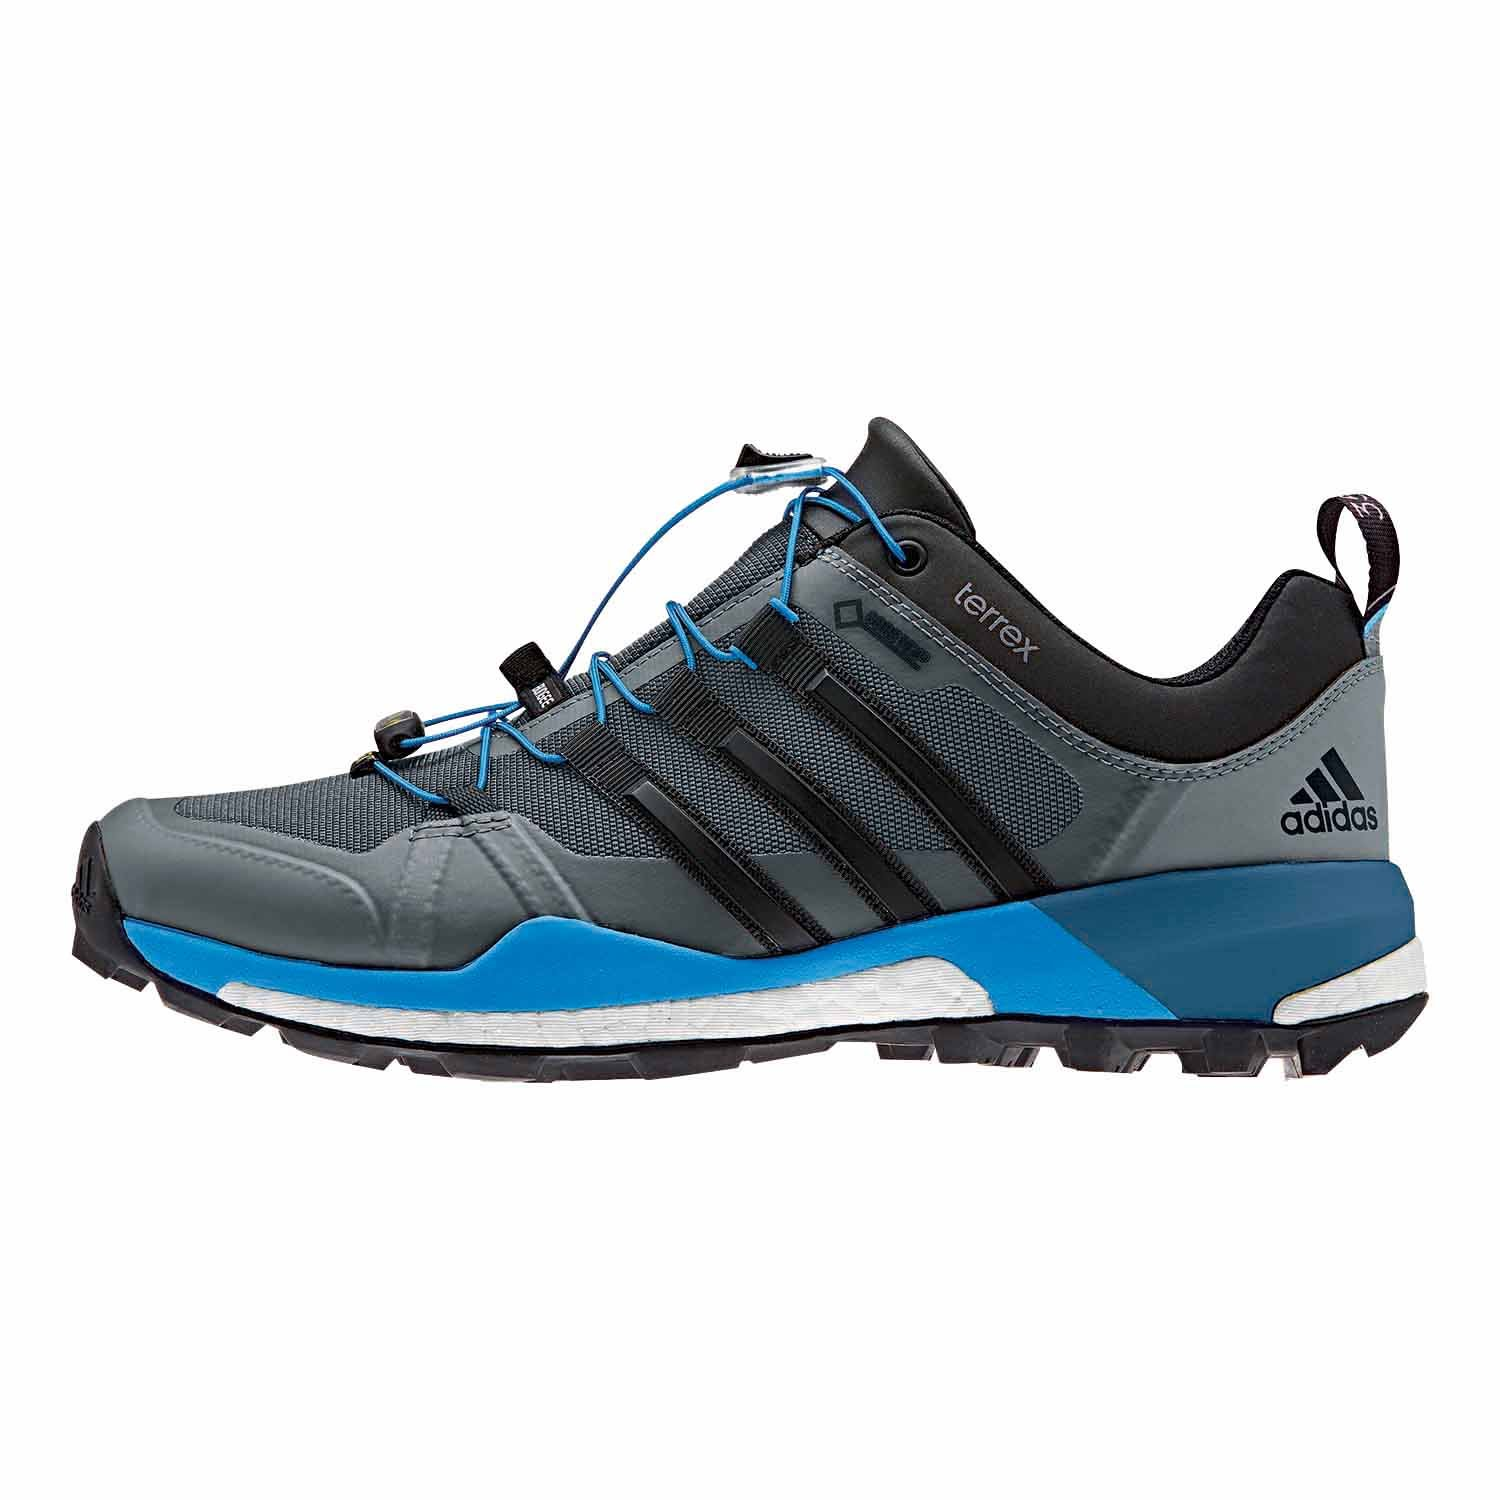 adidas Terrex Skychaser GTX® Trailrunning Shoes Men  Amazon.co.uk  Shoes    Bags ce87e0a2a75